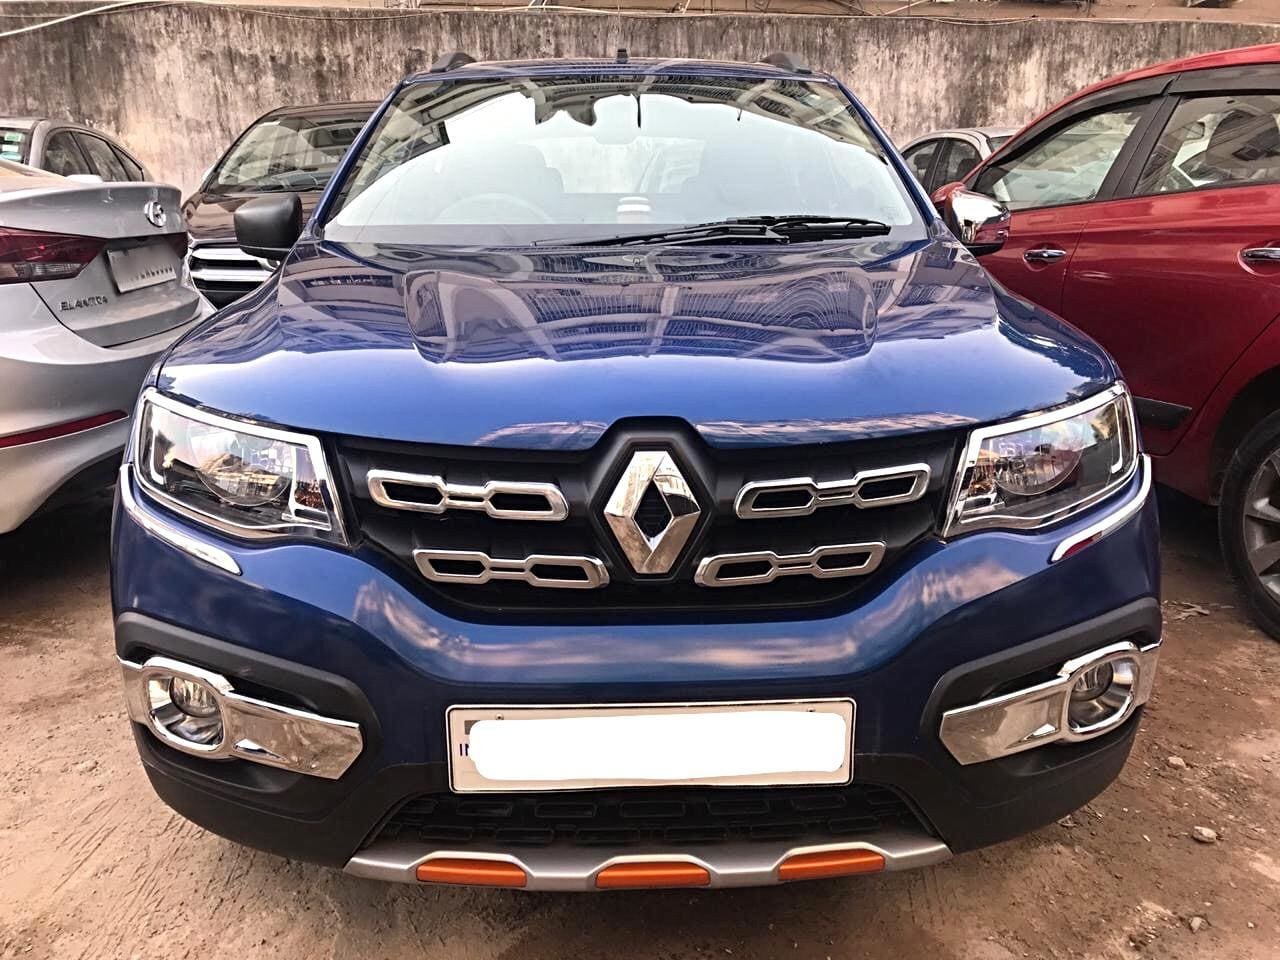 The Motorcade - Best Used Car Dealer in Kolkata - Buy Sell Second Hand Used  Cars